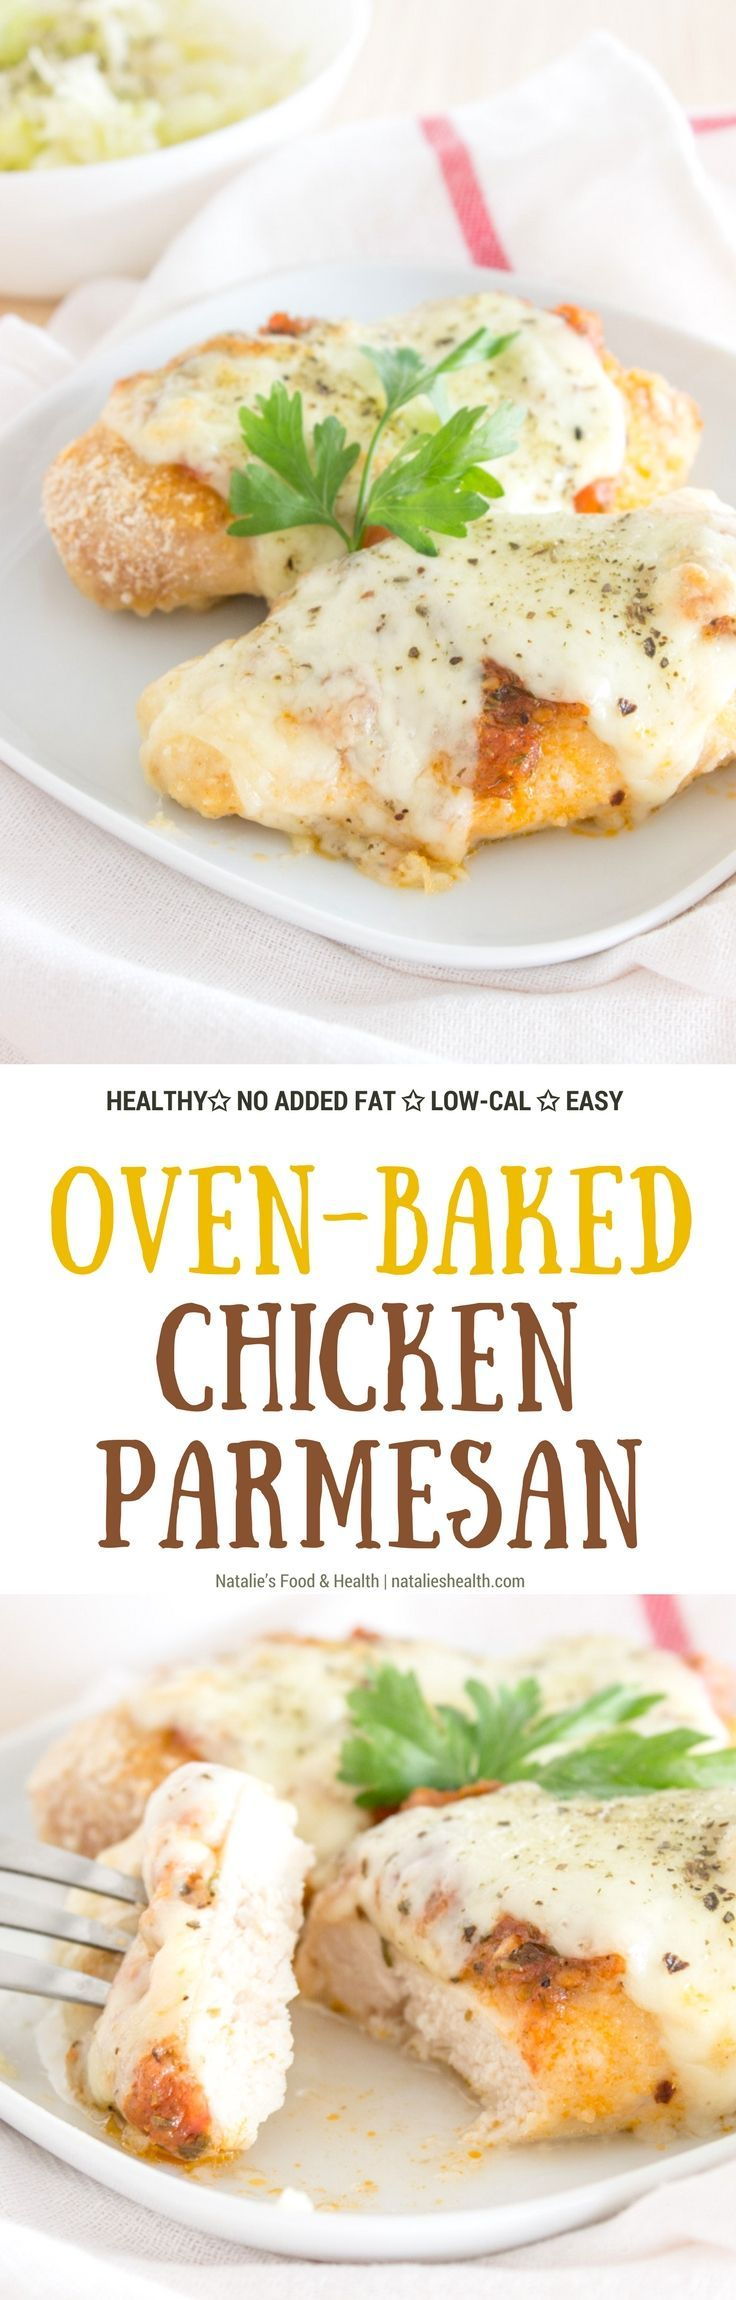 Easy OVEN-BAKED Chicken Parmesan topped with mozzarella cheese and homemade fresh tomato sauce, seasoned with fragrant mediterranean spices